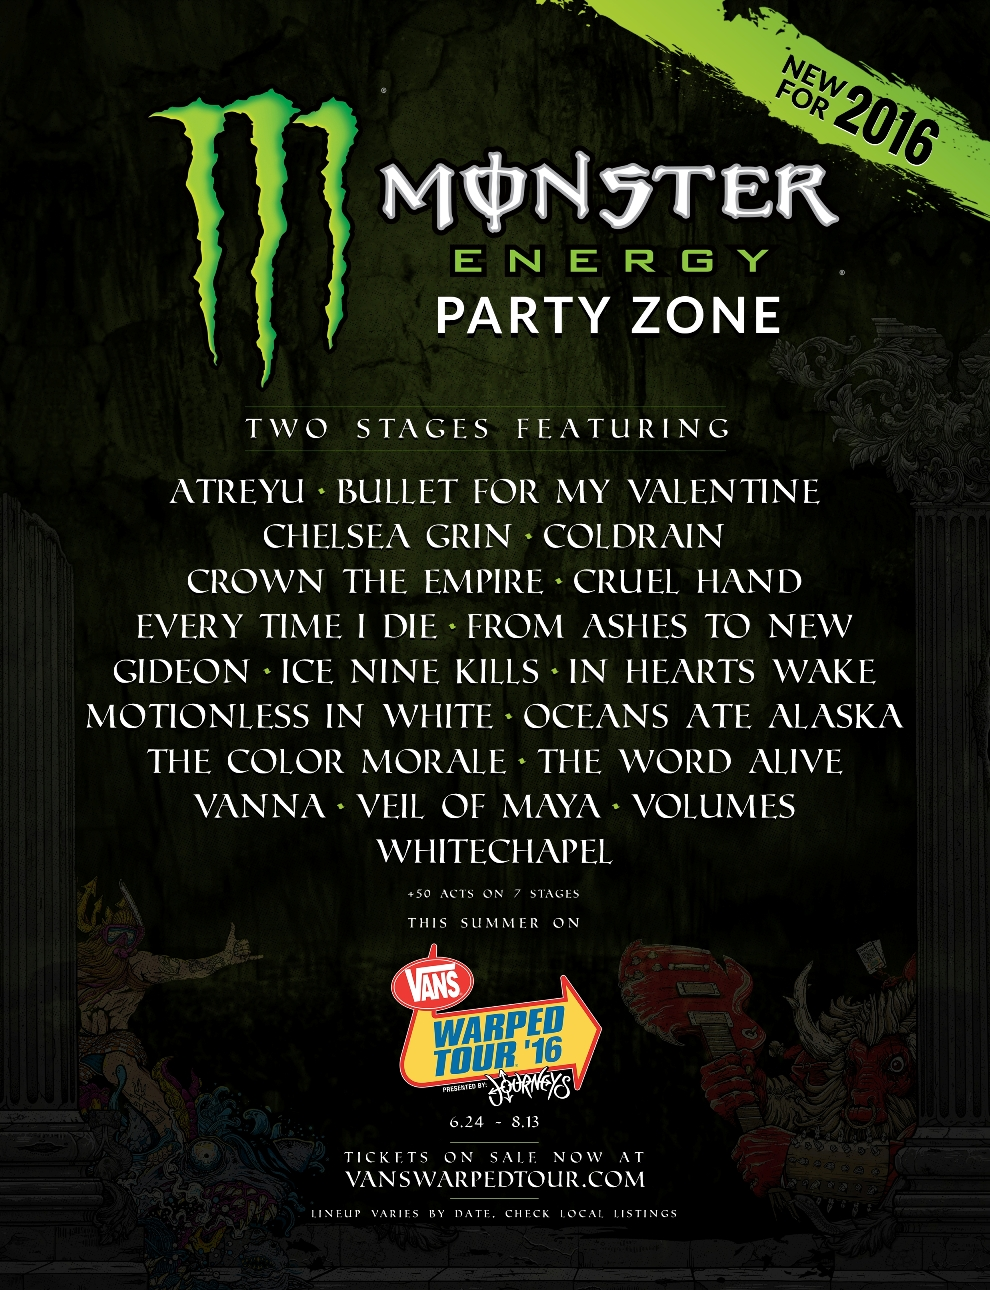 http://msopr.com/files/monster_energy_party_zone_lineup_med_res.JPG